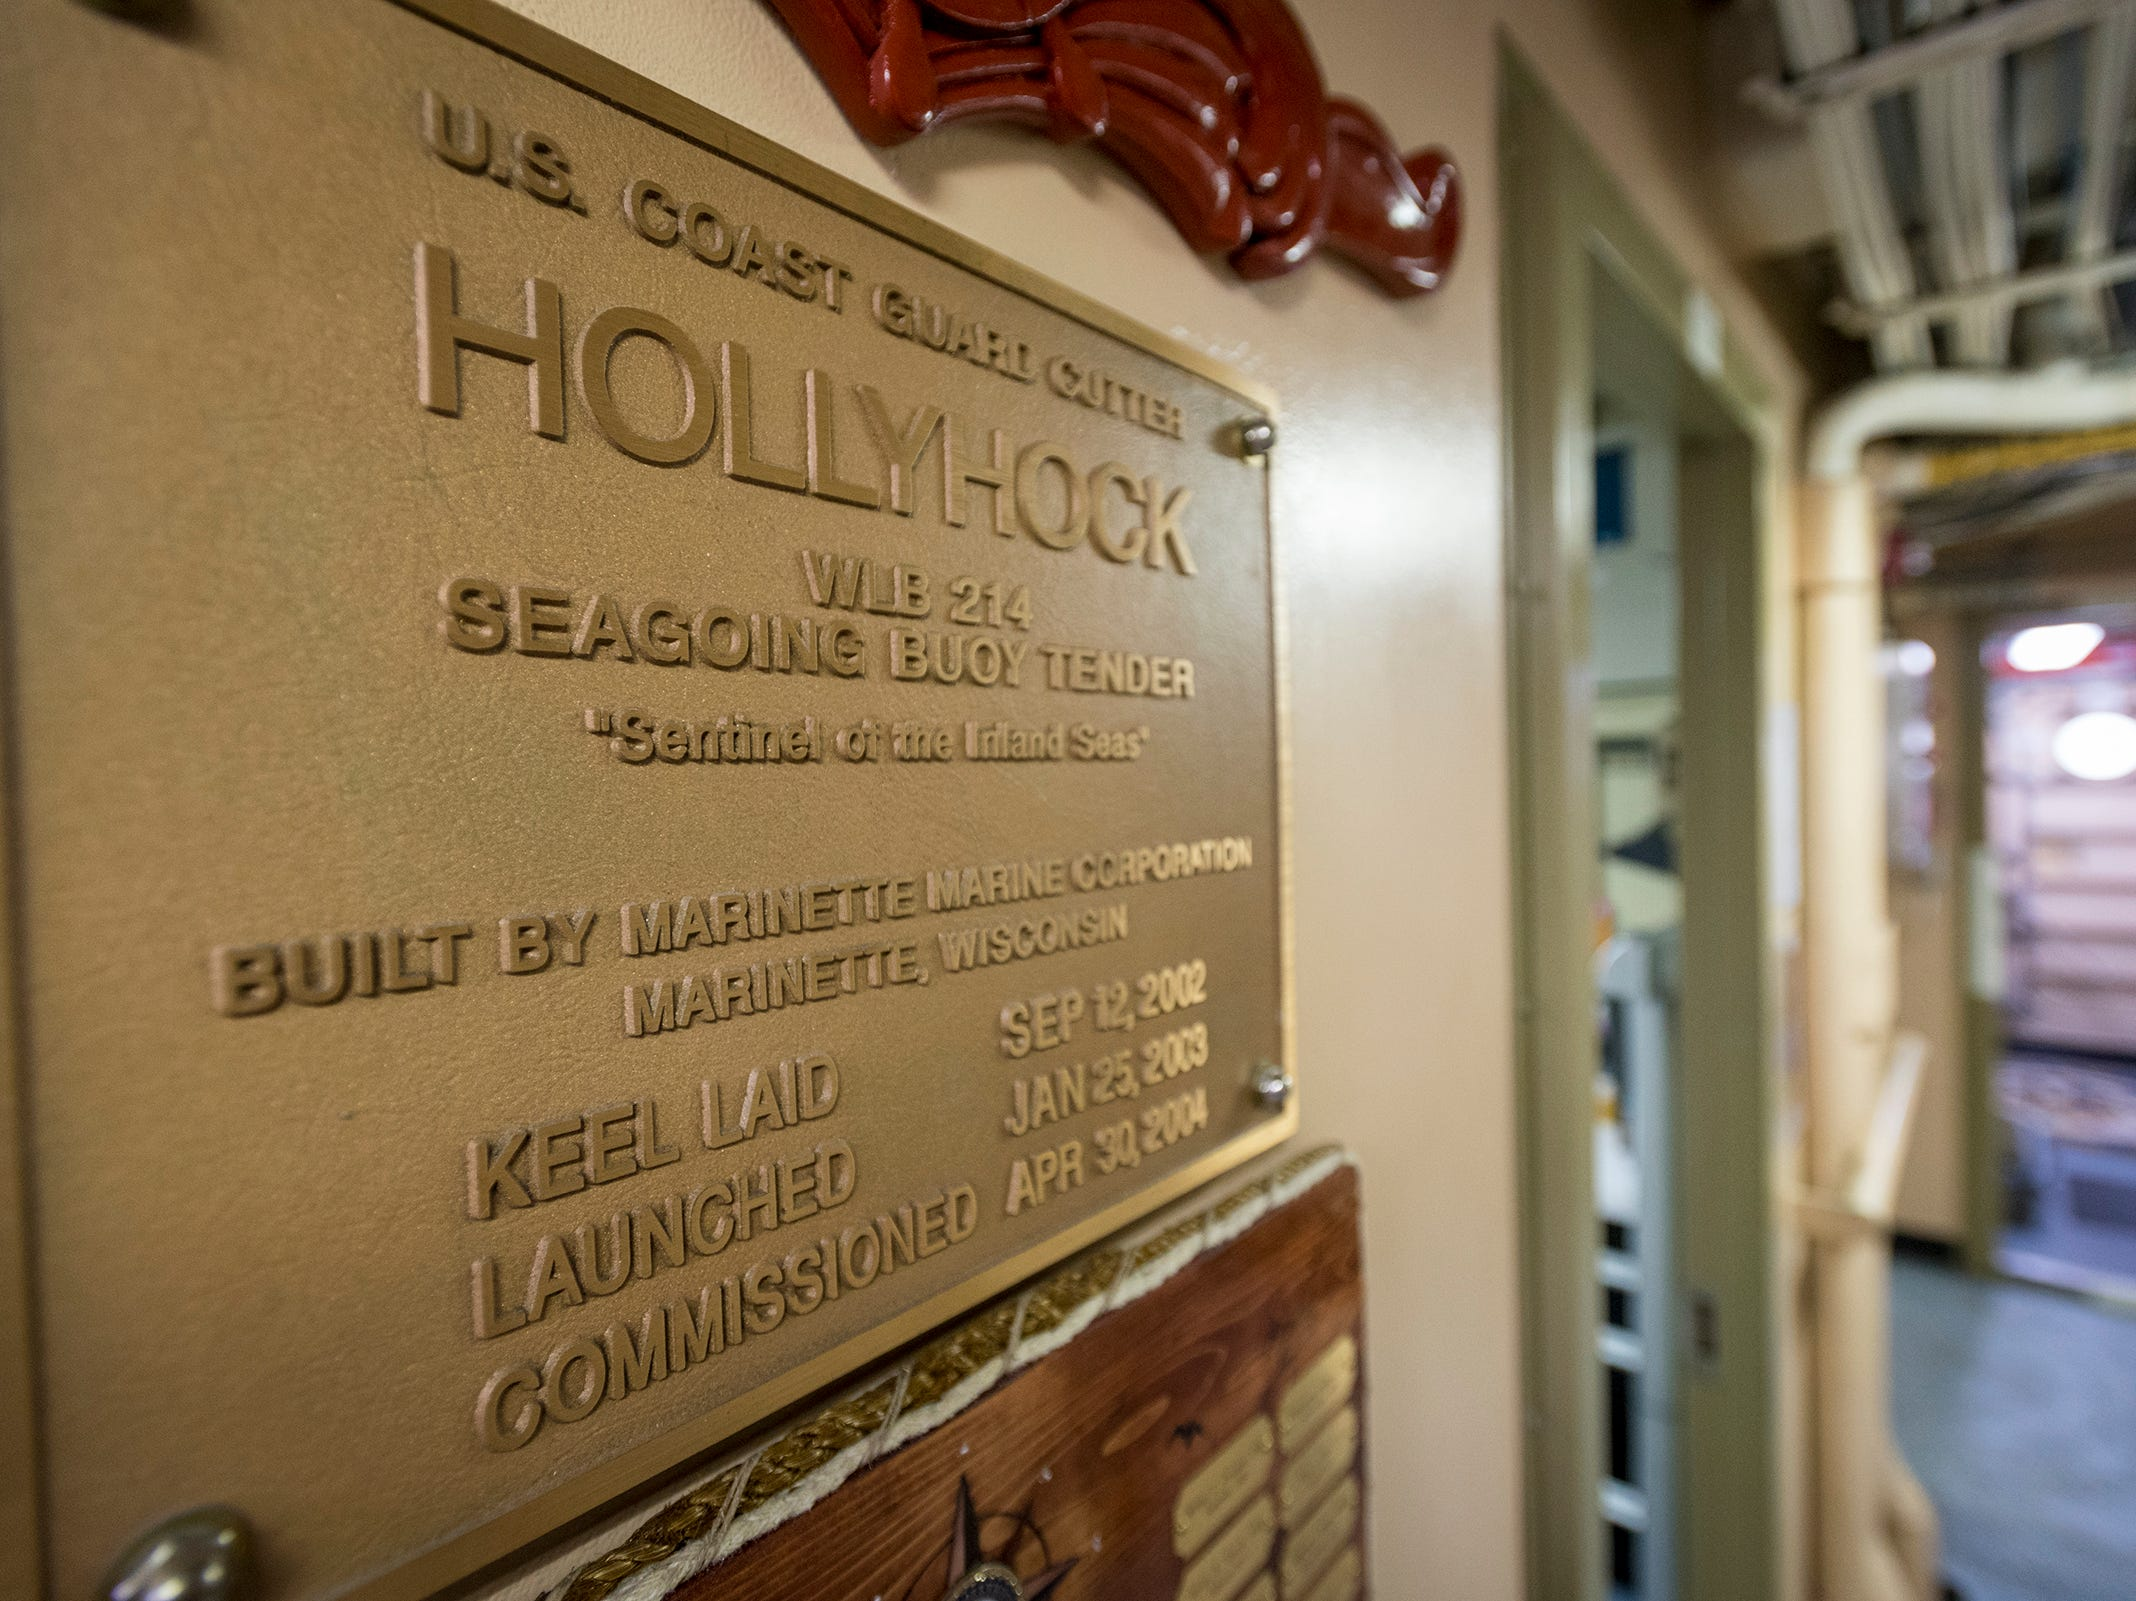 Photos and plaques showing the history of the Coast Guard and the USCGC Hollyhock can be seen throughout the ship's deck.